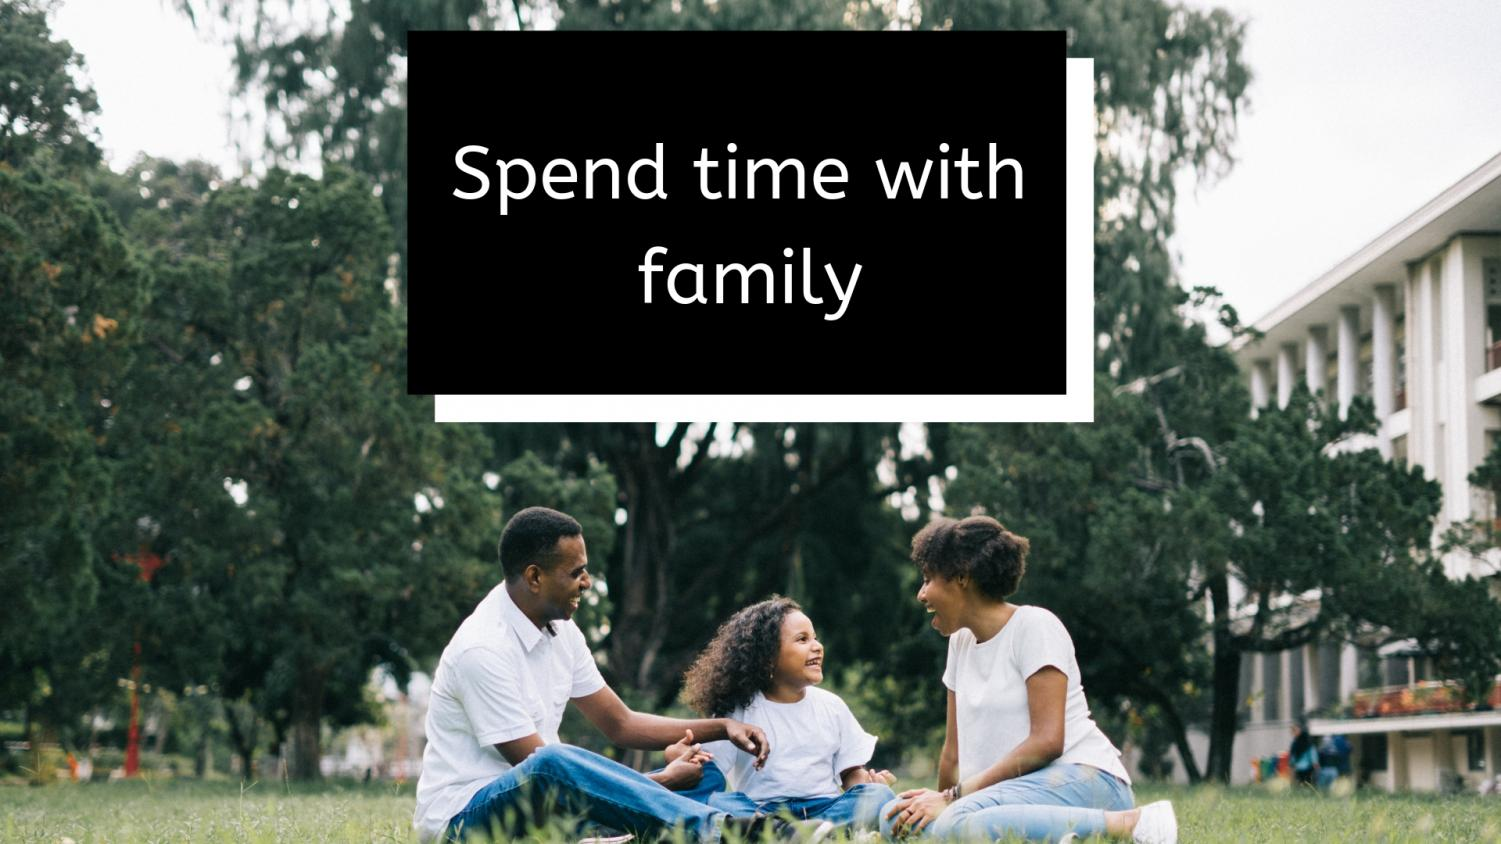 Spend+time+with+your+family+-+Your+family+will+always+be+there+for+you%2C+show+you+appreciate+them.+Call+your+grandparents+and+say+you+love+them%2C+plan+a+day+to+have+dinner+with+your+parents%2C+or+send+a+letter+to+a+far+relative.+